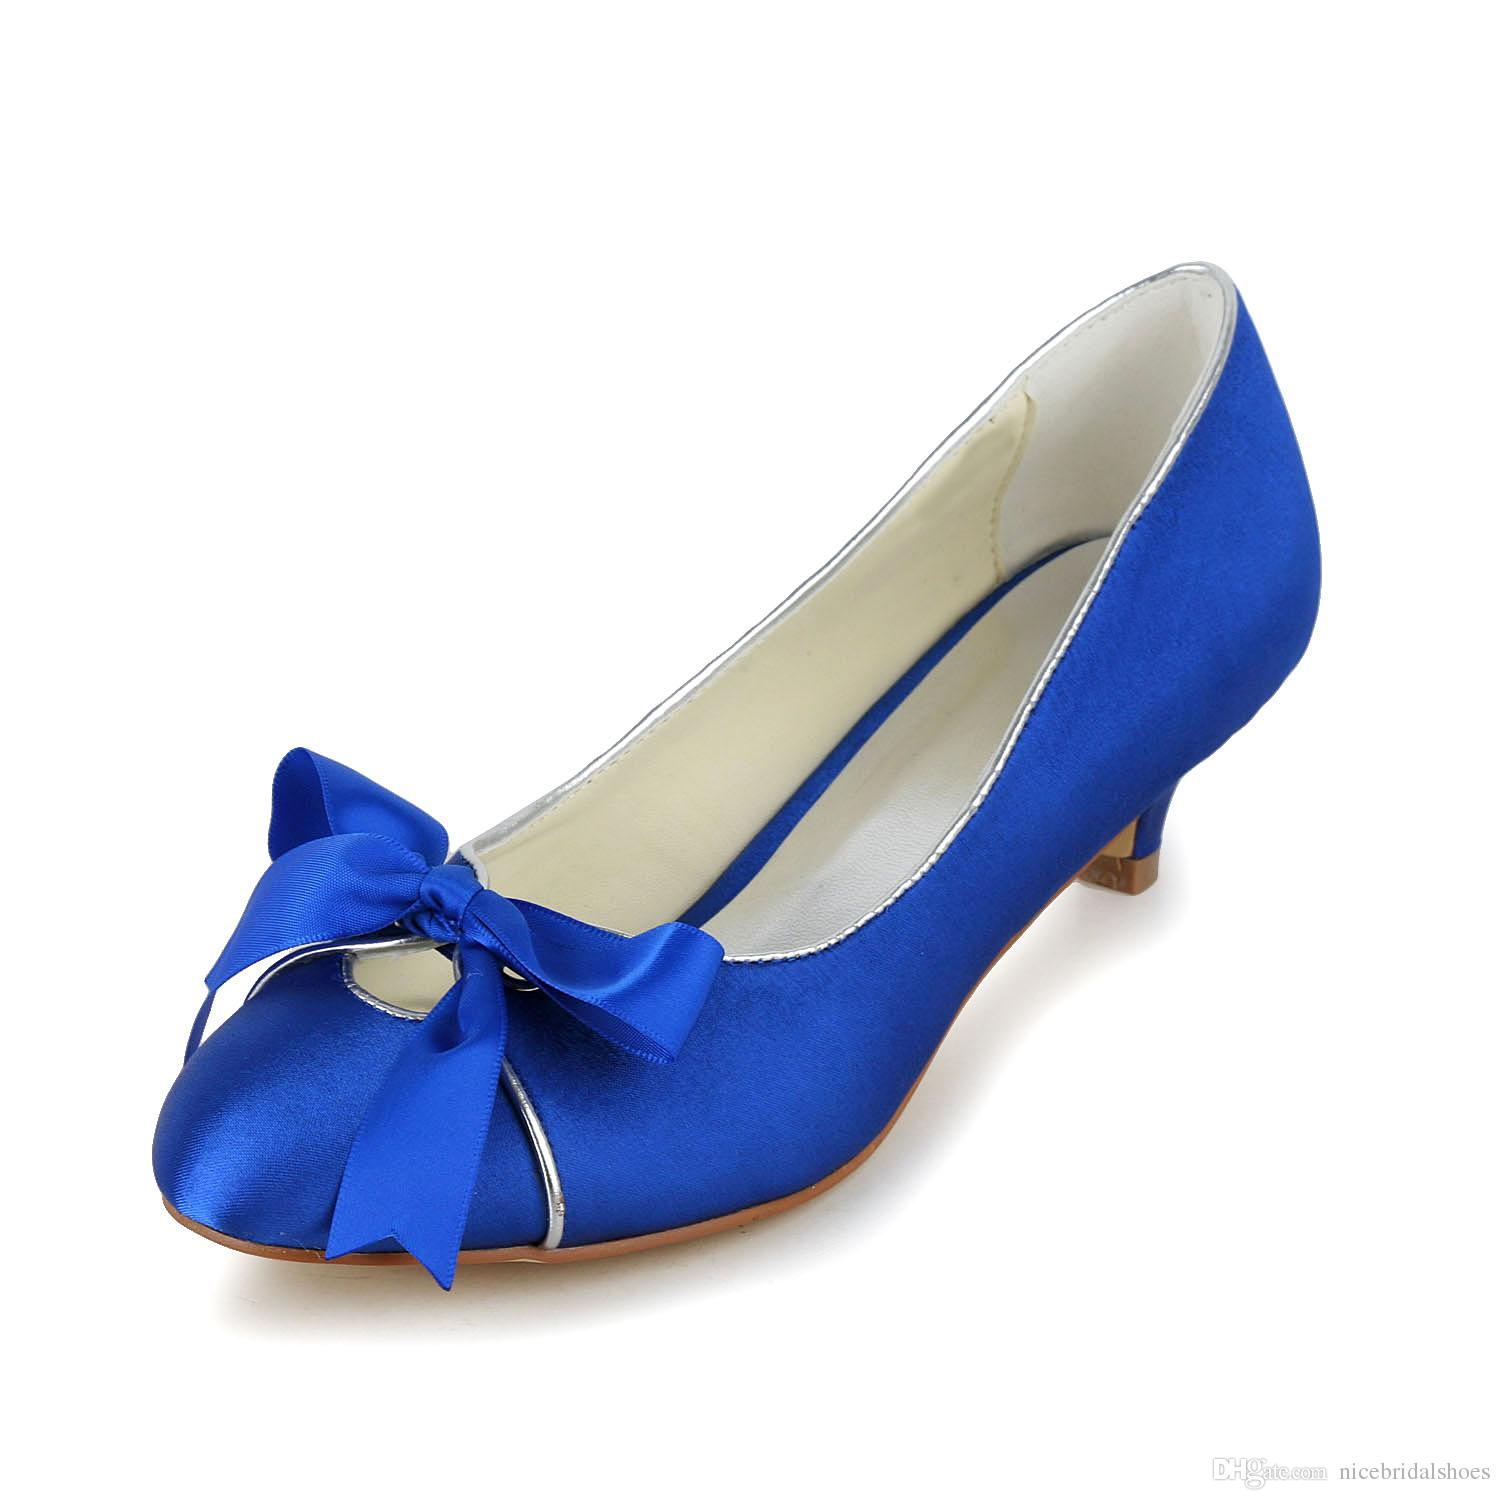 royal blue wedding shoes low heel photo - 1